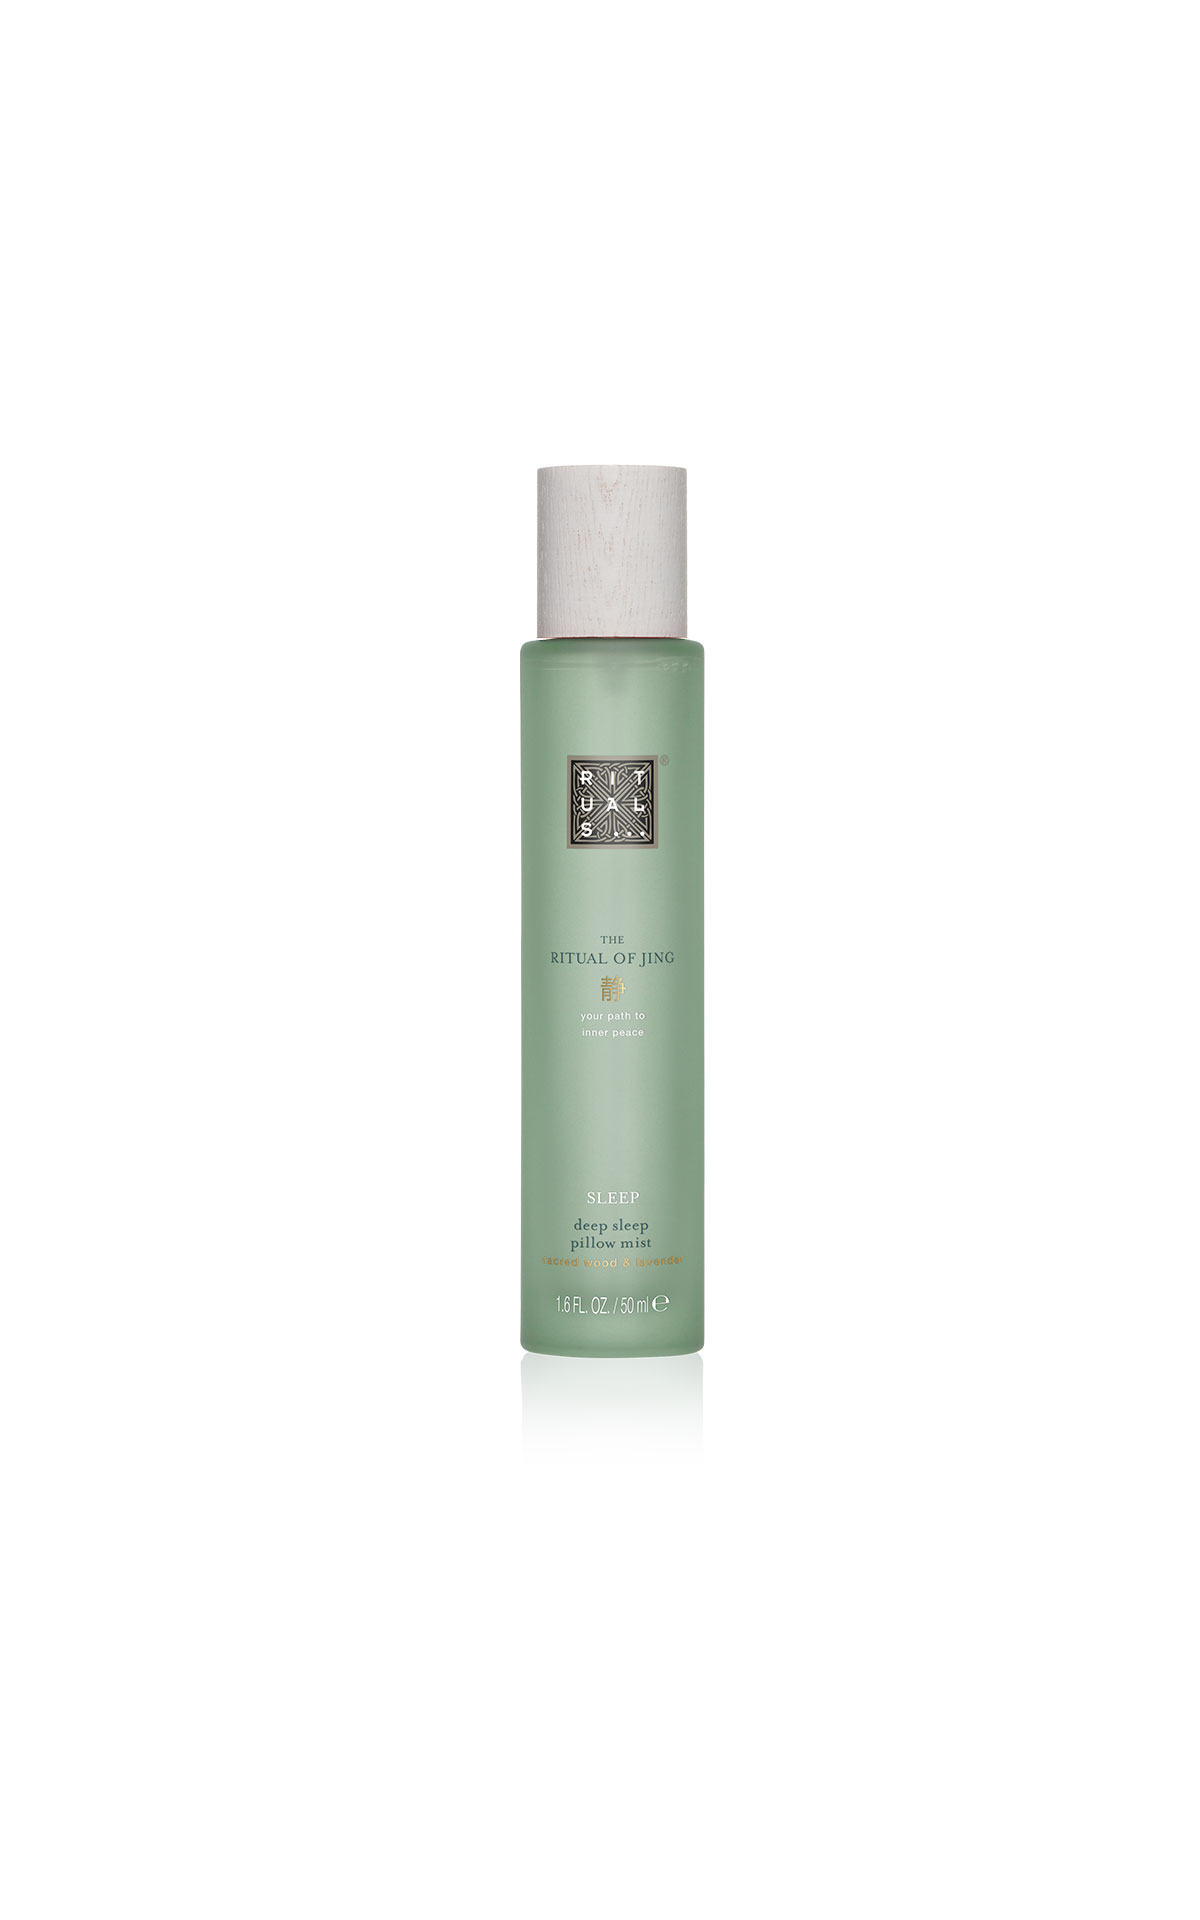 Rituals The ritual of jing pillow mist from Bicester Village